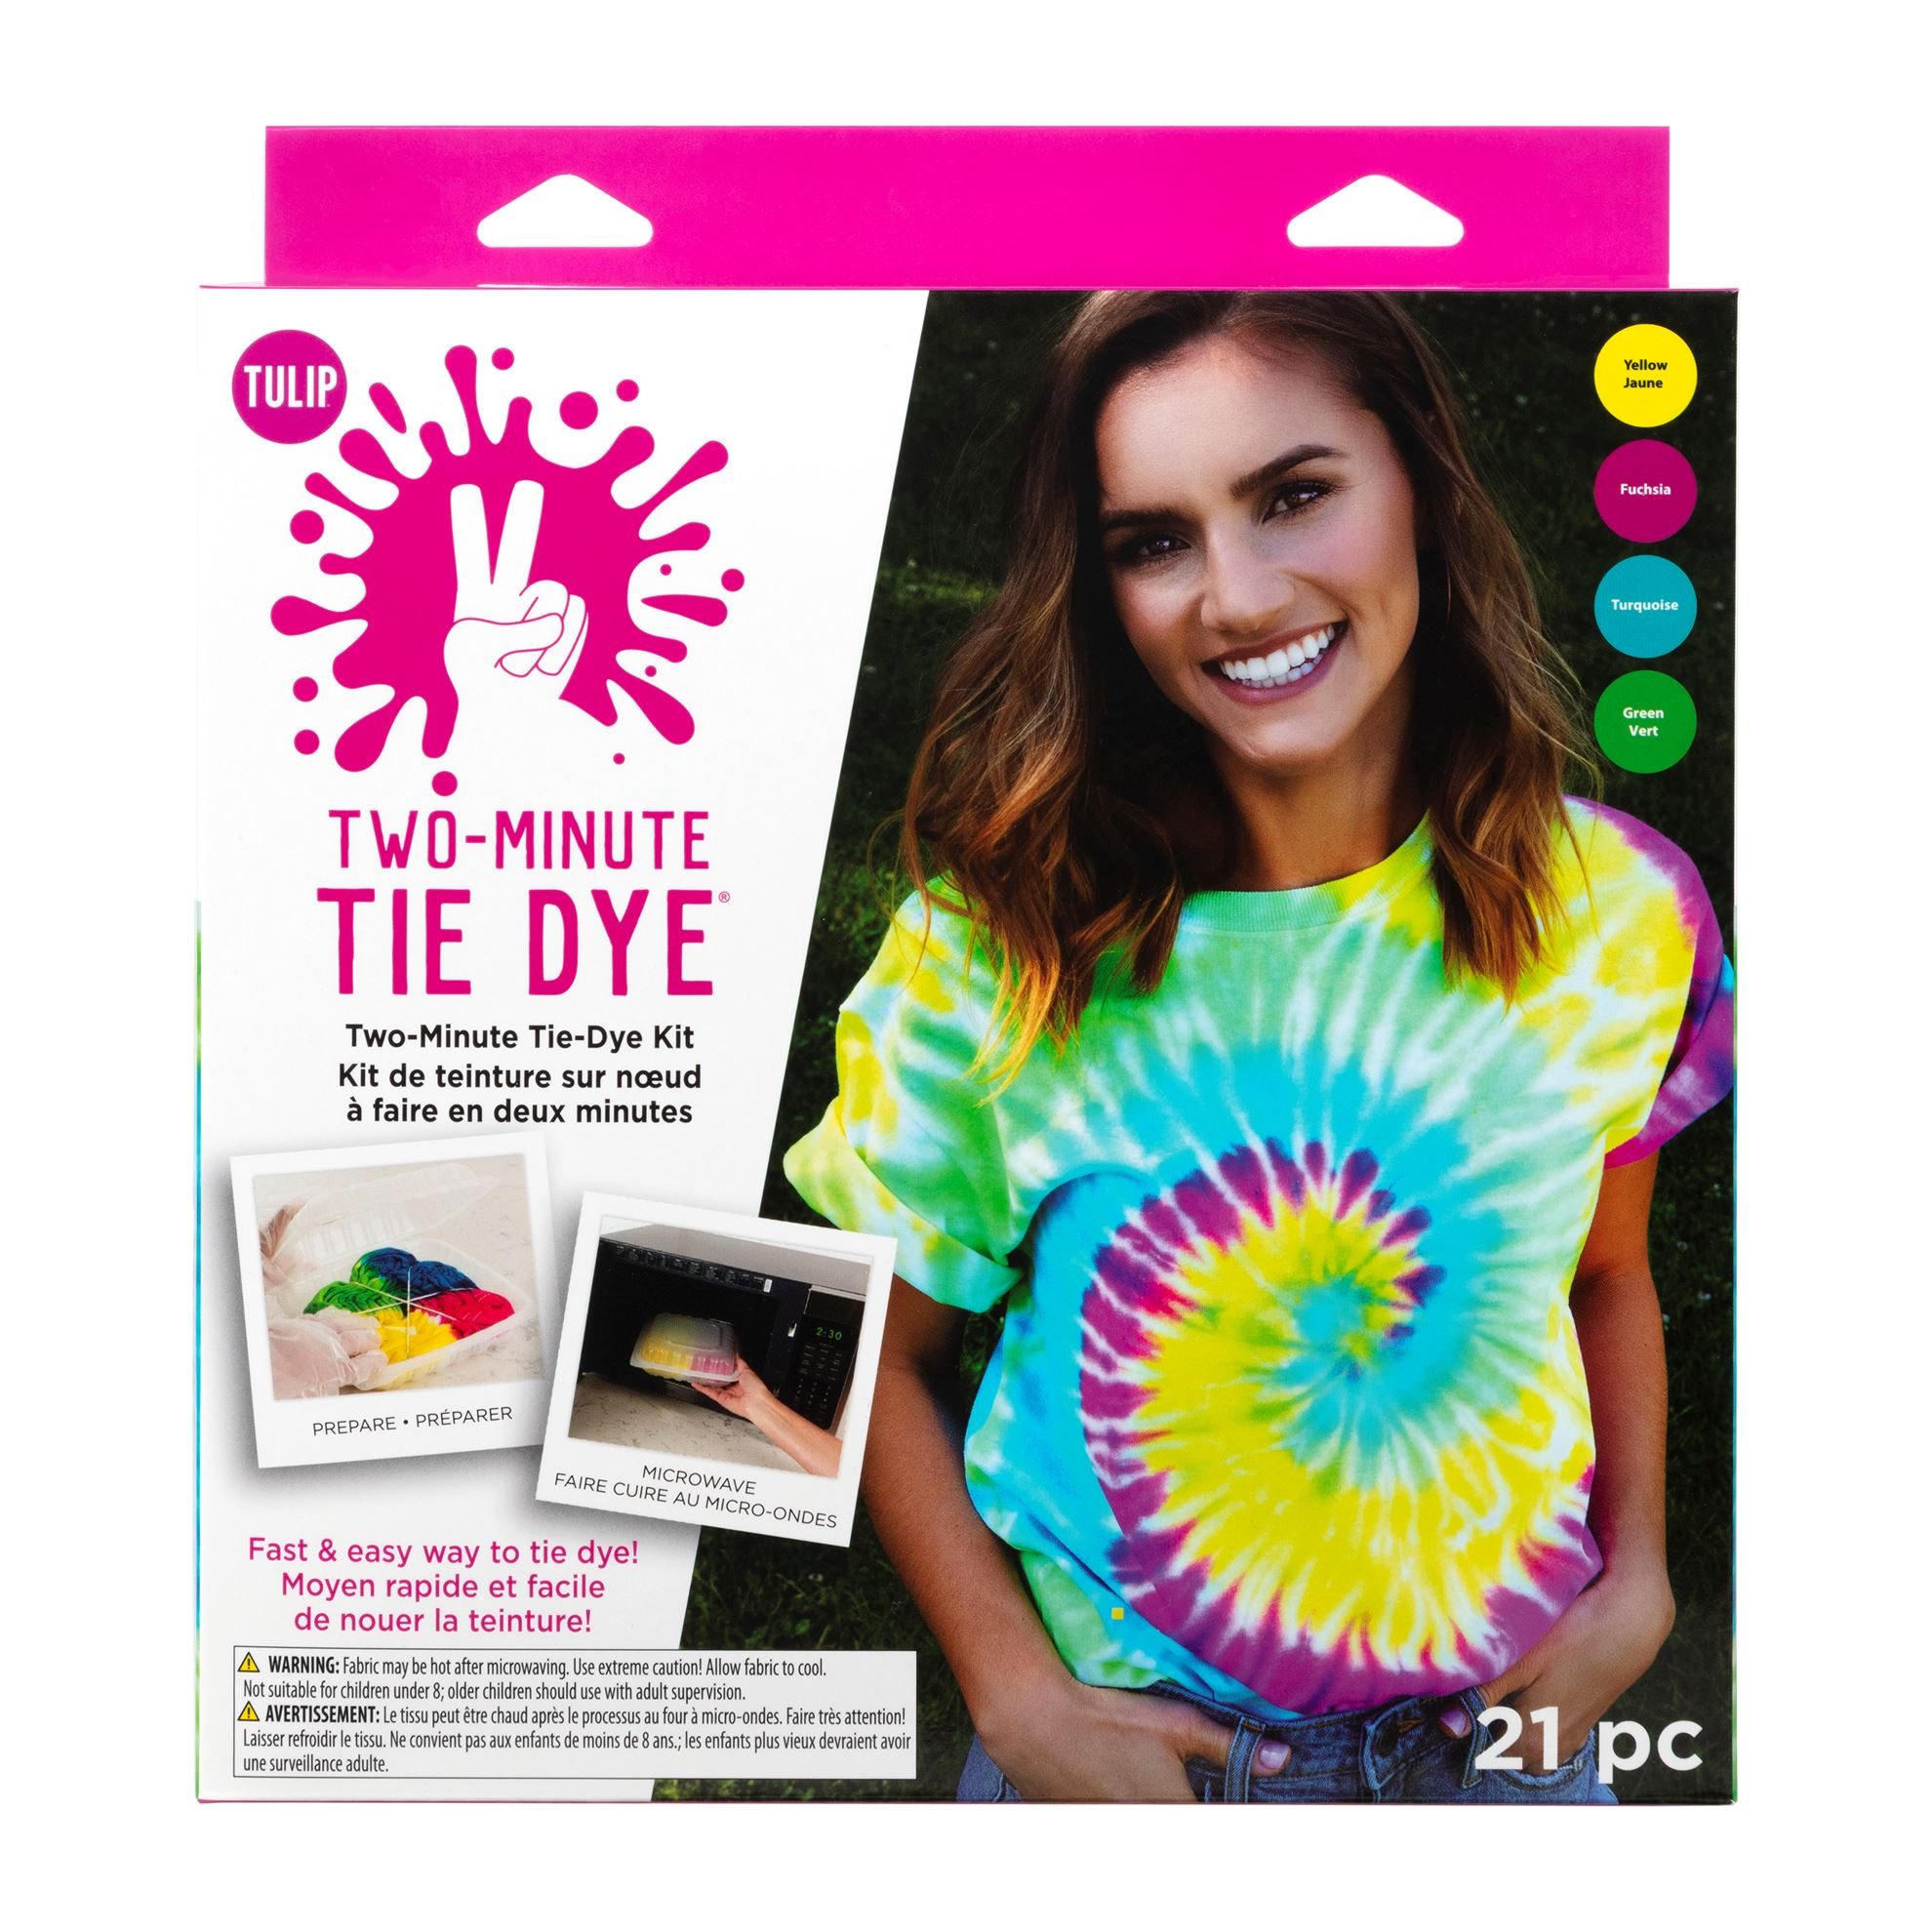 Picture of Tulip Two-Minute Tie Dye Kit